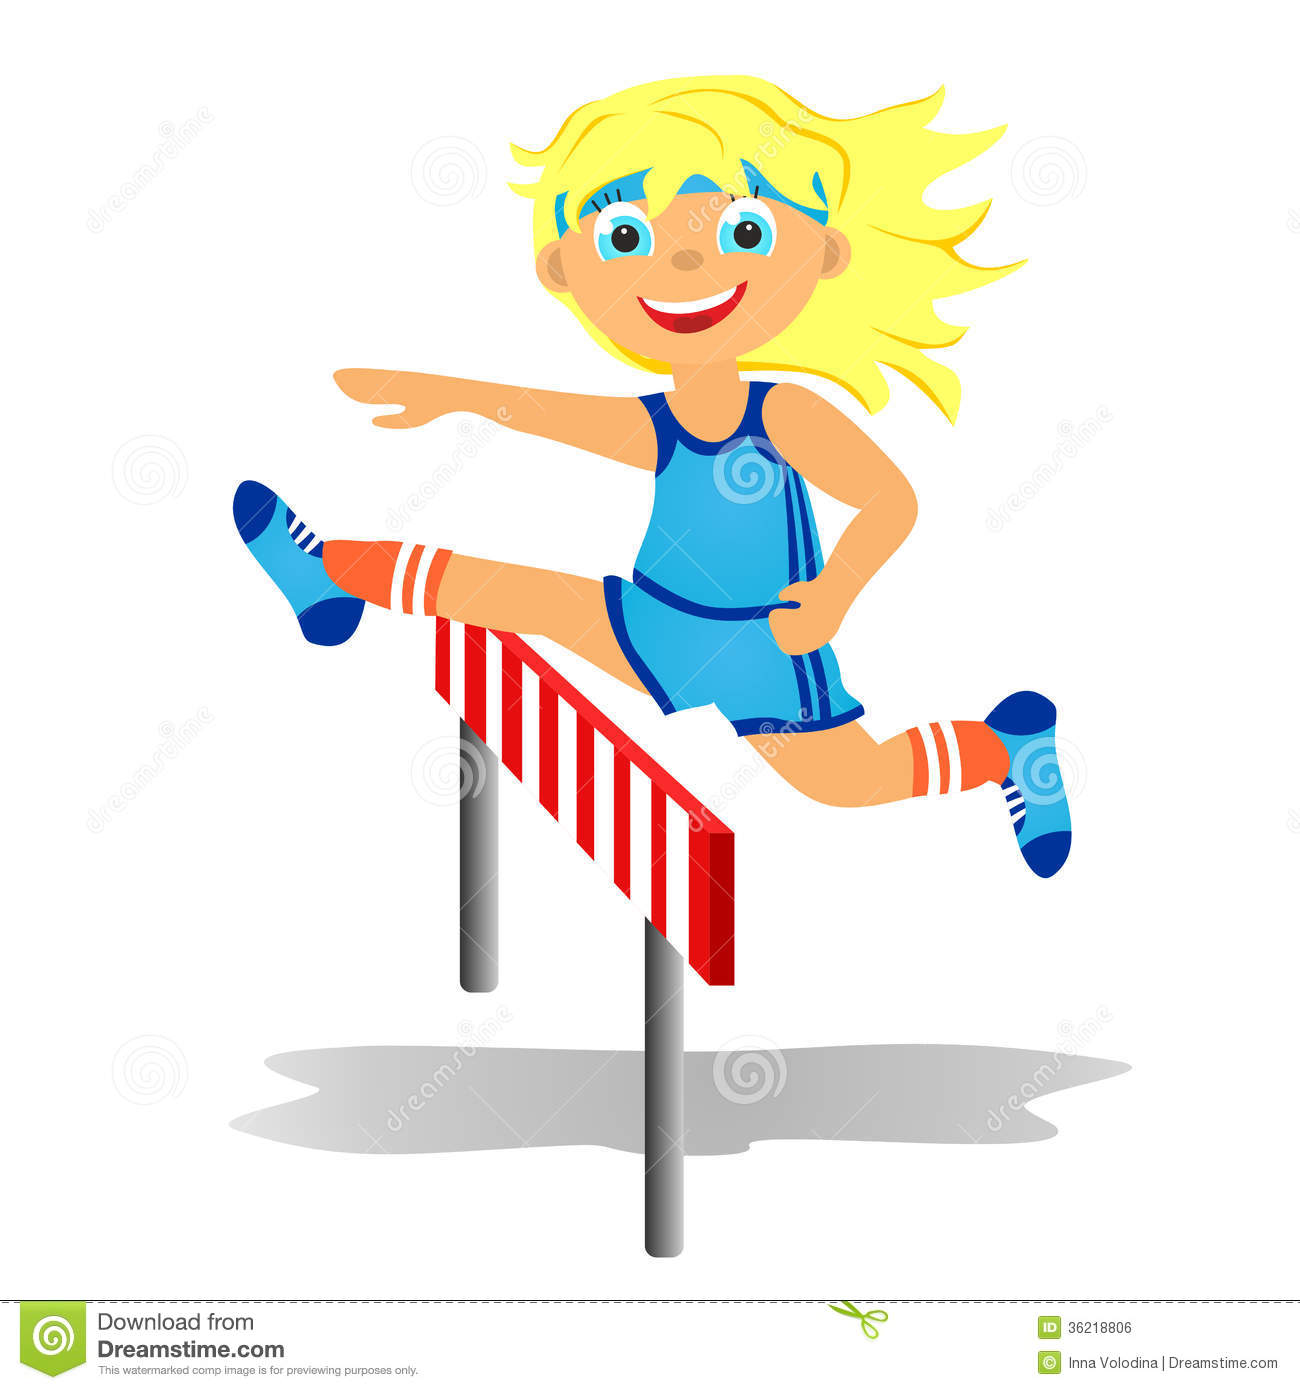 Hurdle race clipart - Clipground